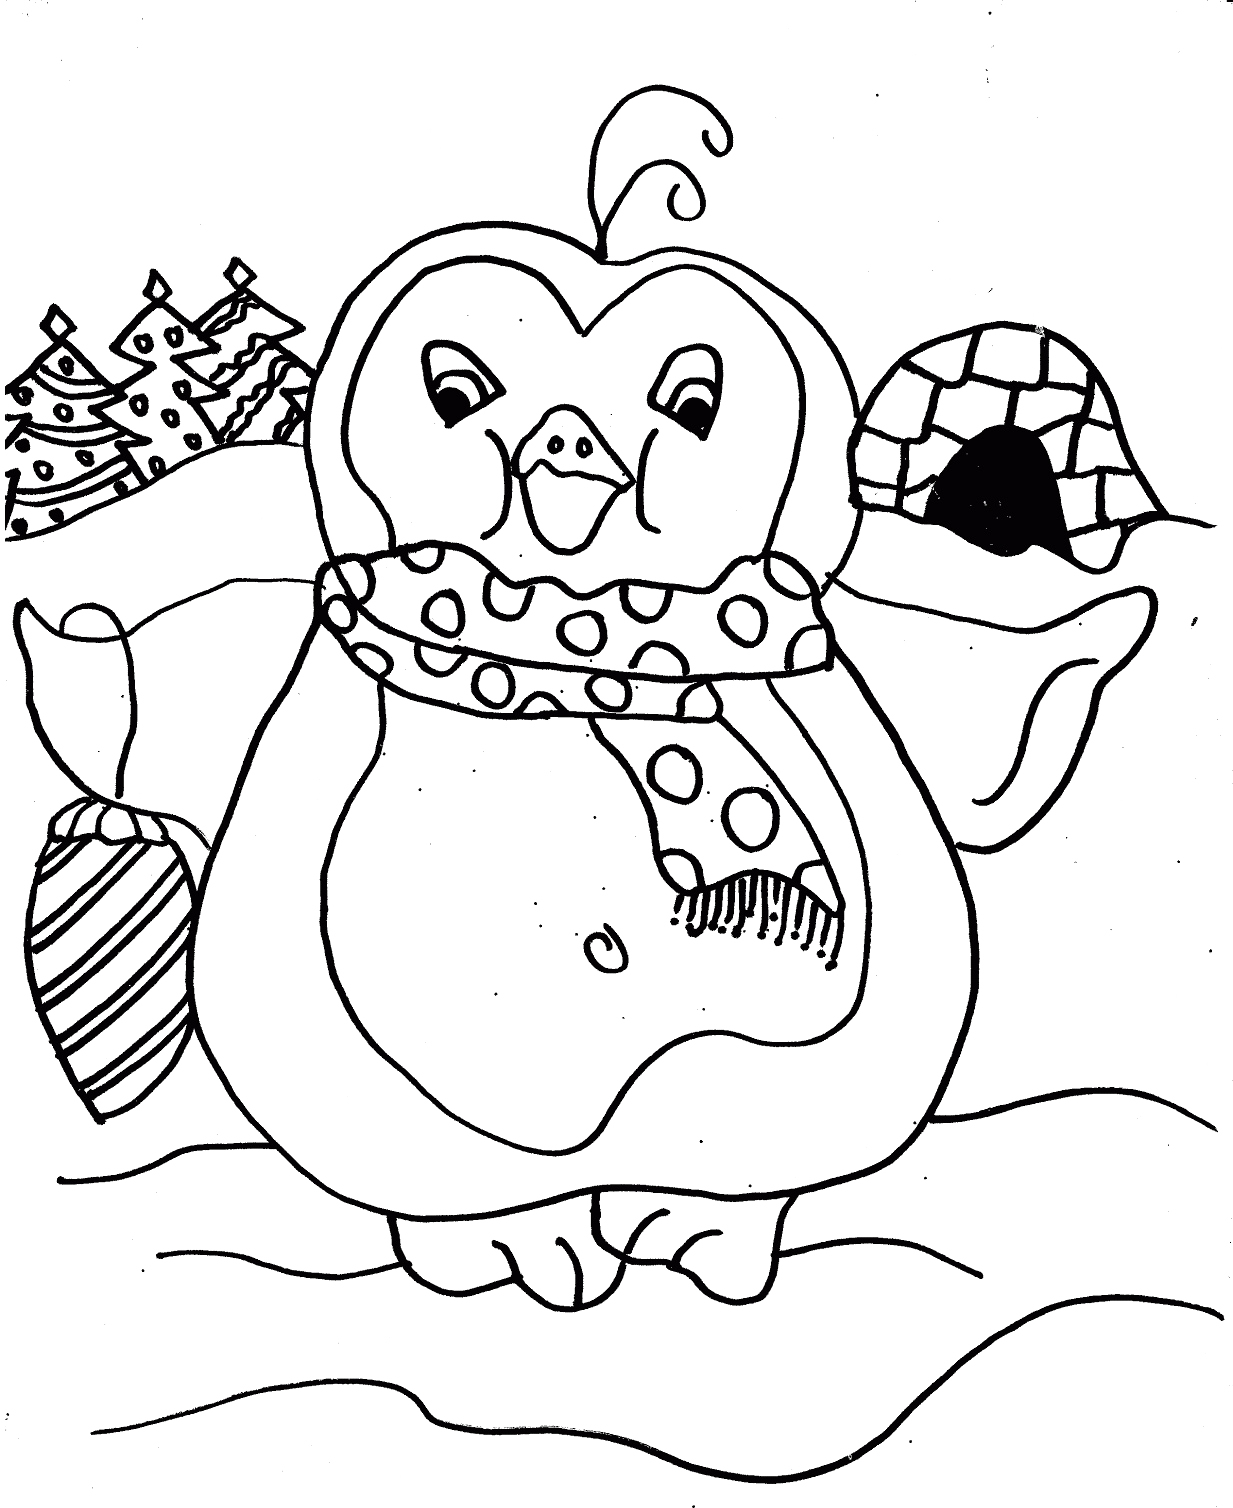 I have download Penguin That Feel So Cool Coloring Page